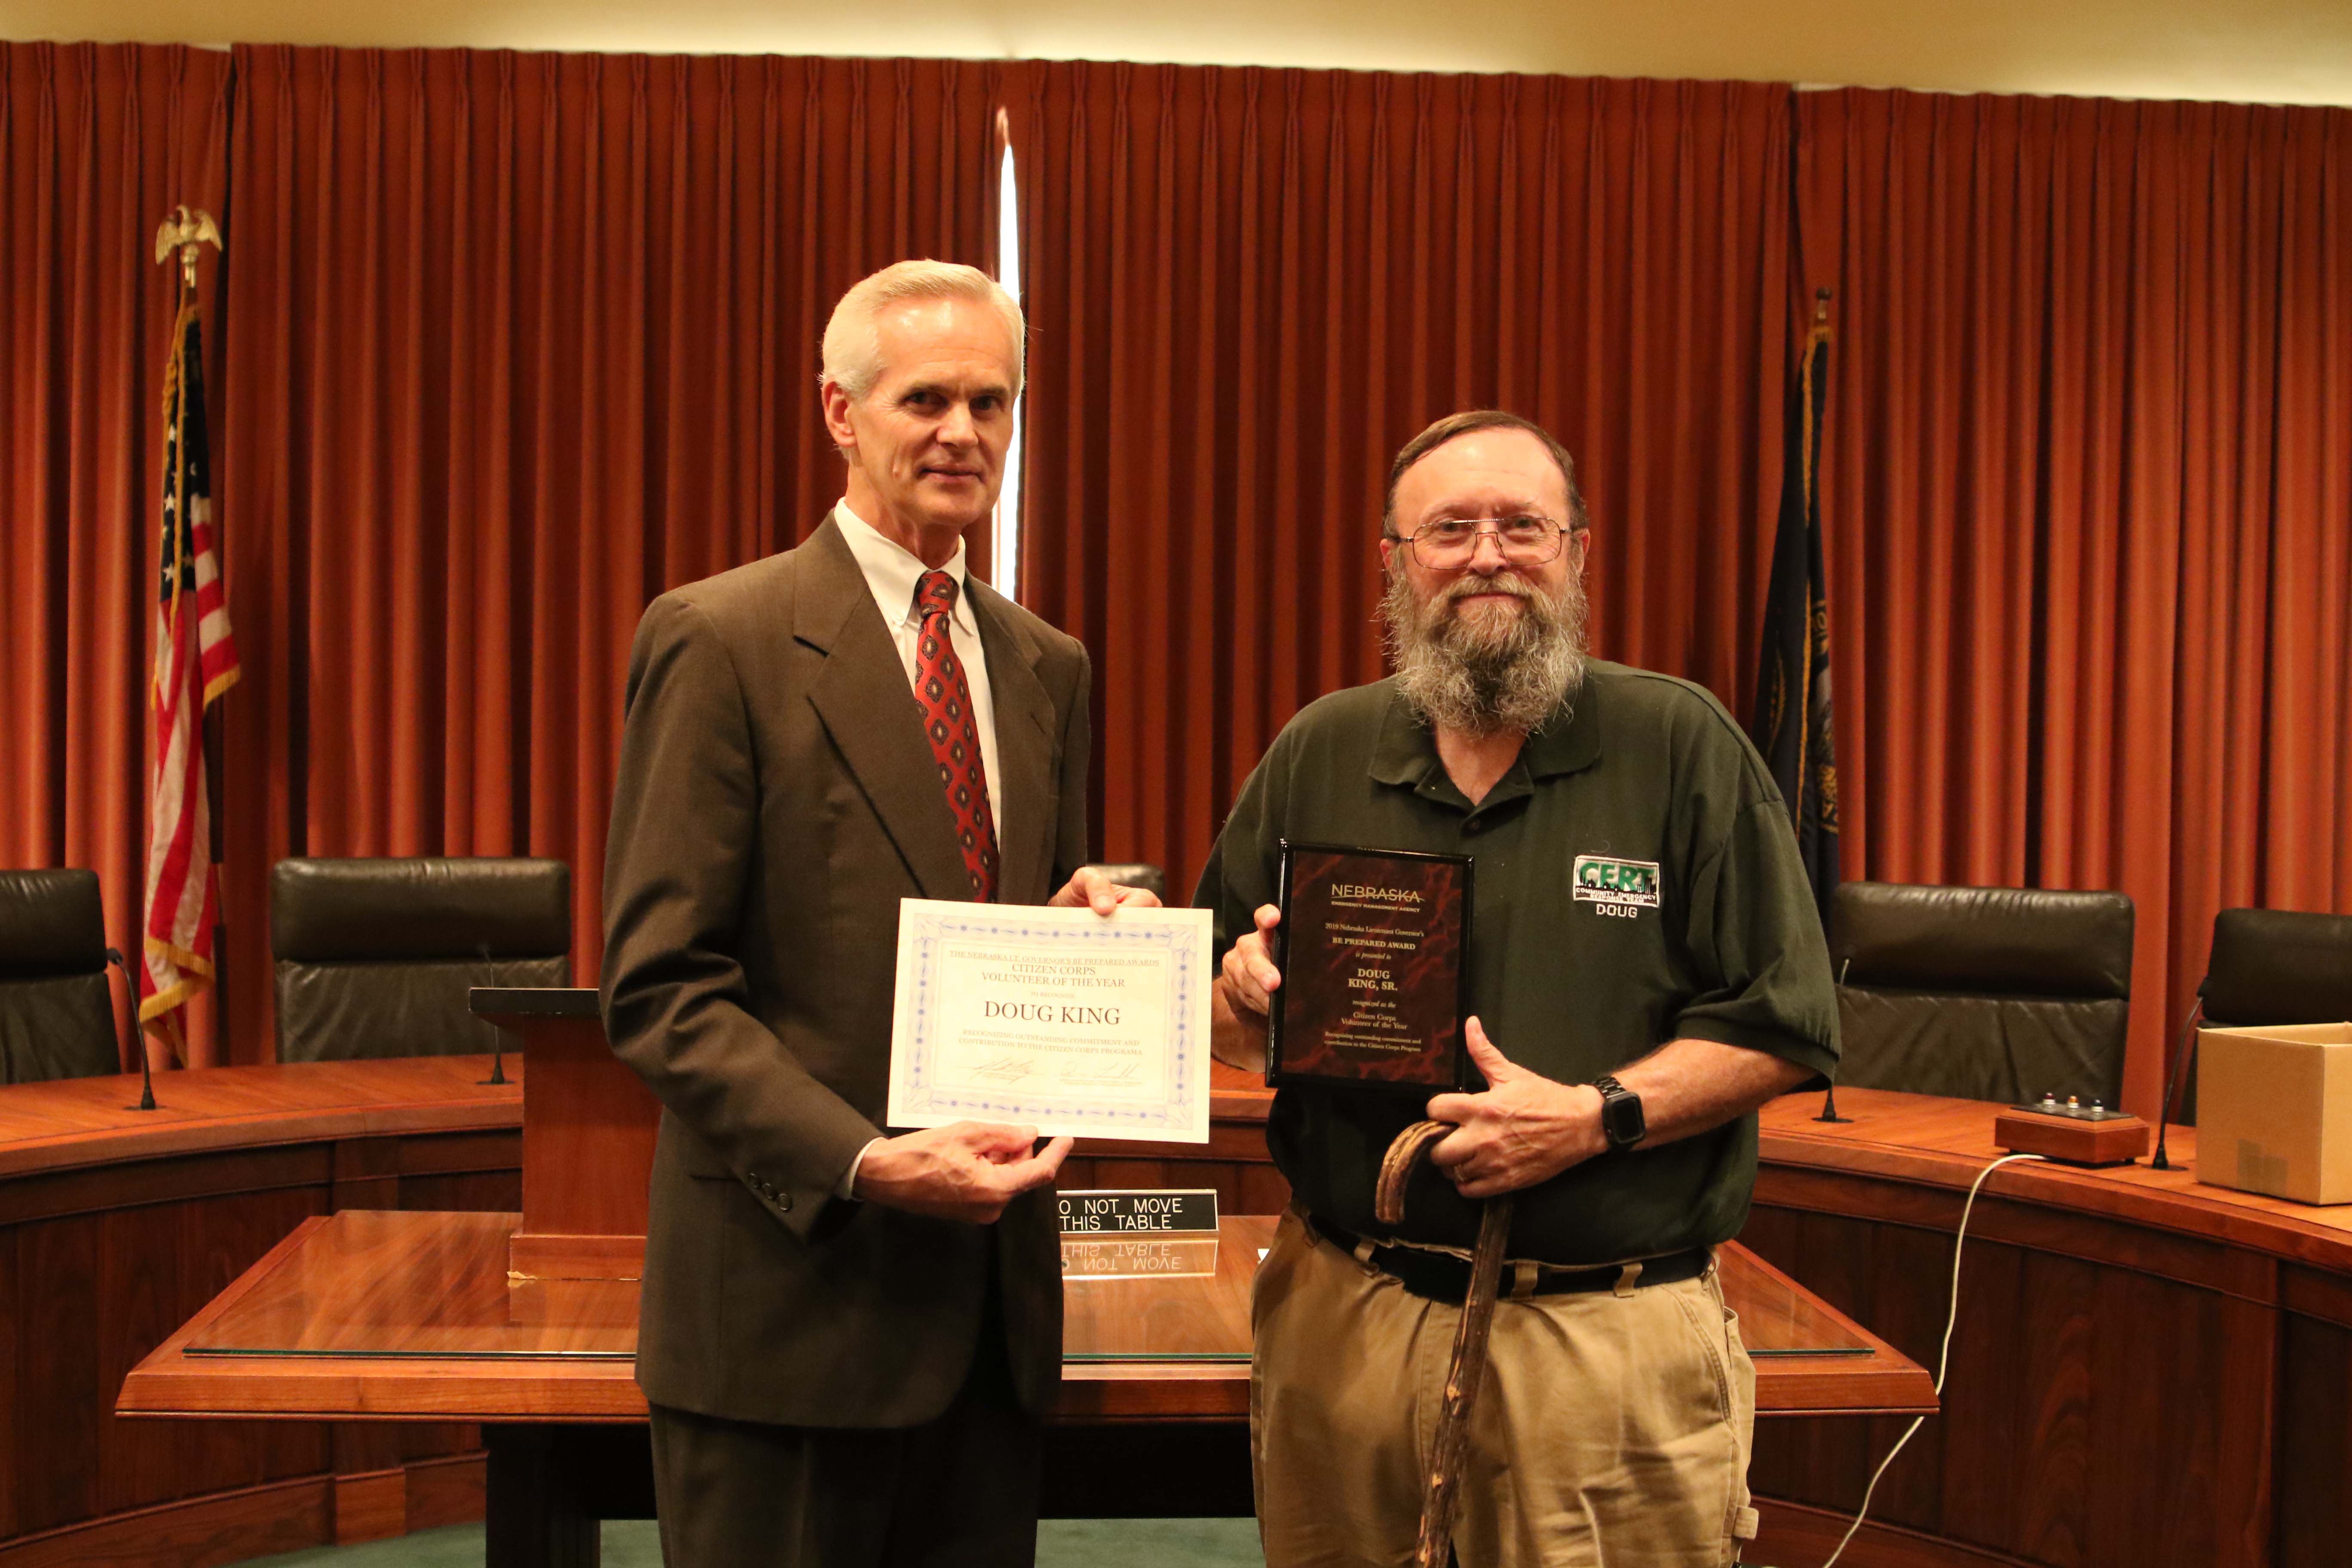 From left, Lt. Gov. Mike Foley presents Douglas King, Sr. of Bellevue with the Citizen Corps Volunteer of the Year Award.